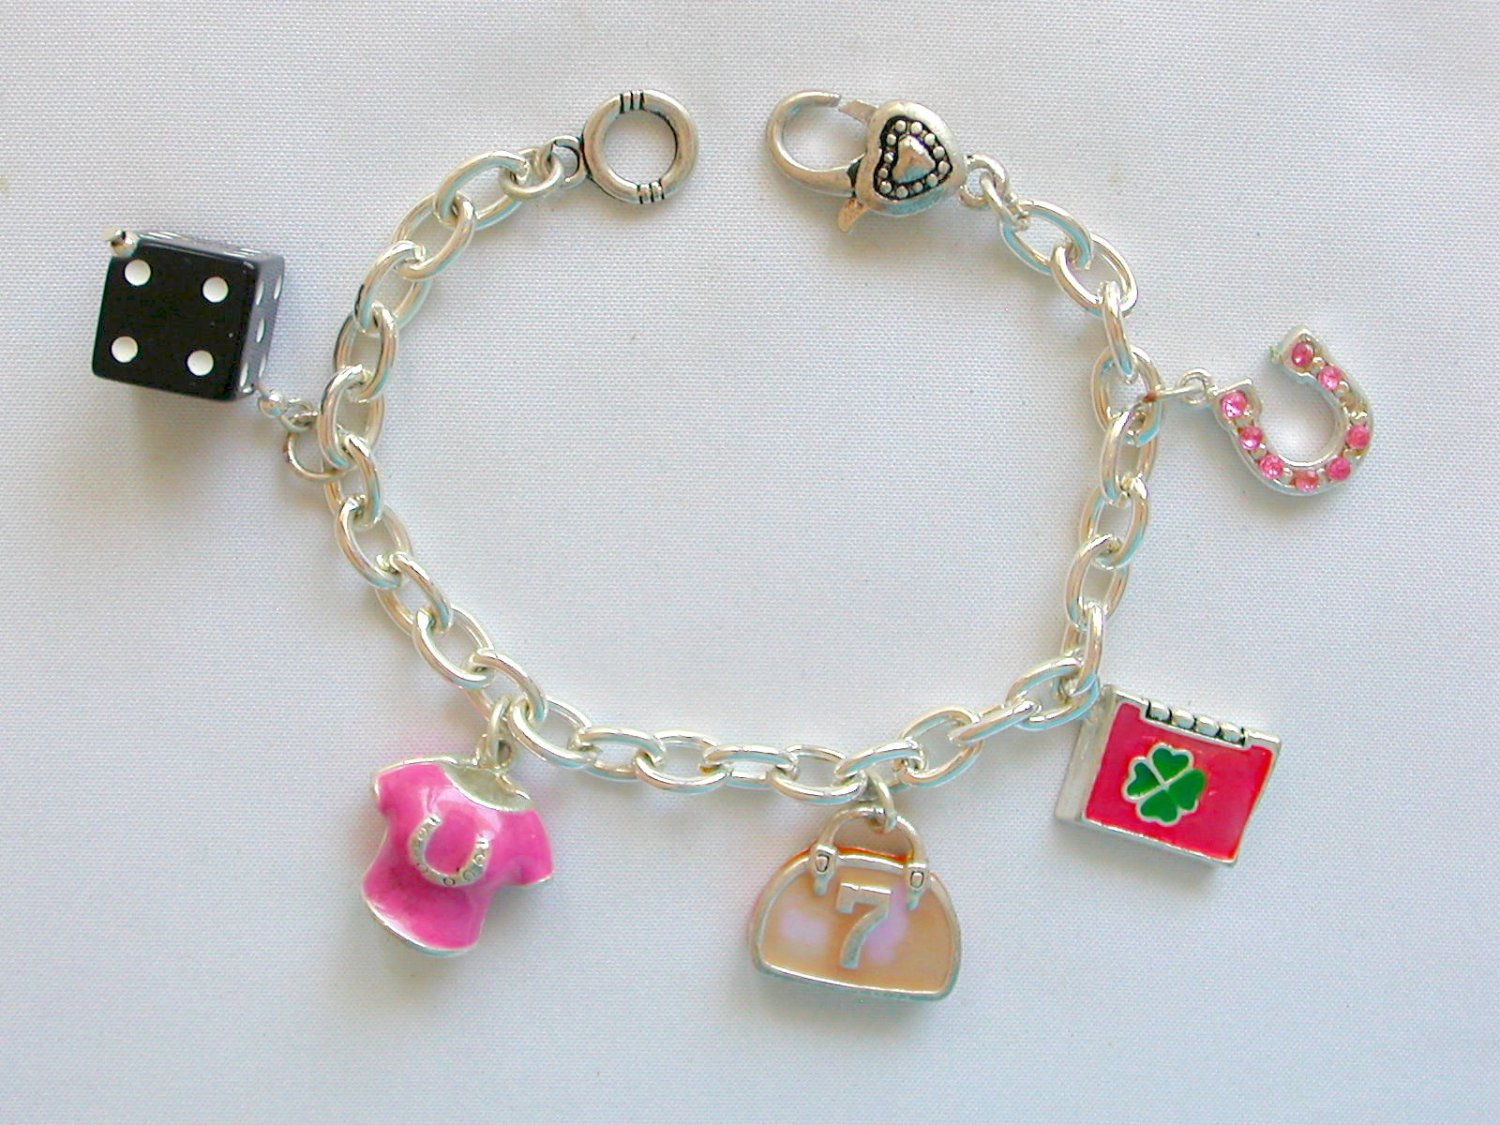 Nwt Lucky Charms Clover Horse Shoe Pink Charm Bracelet